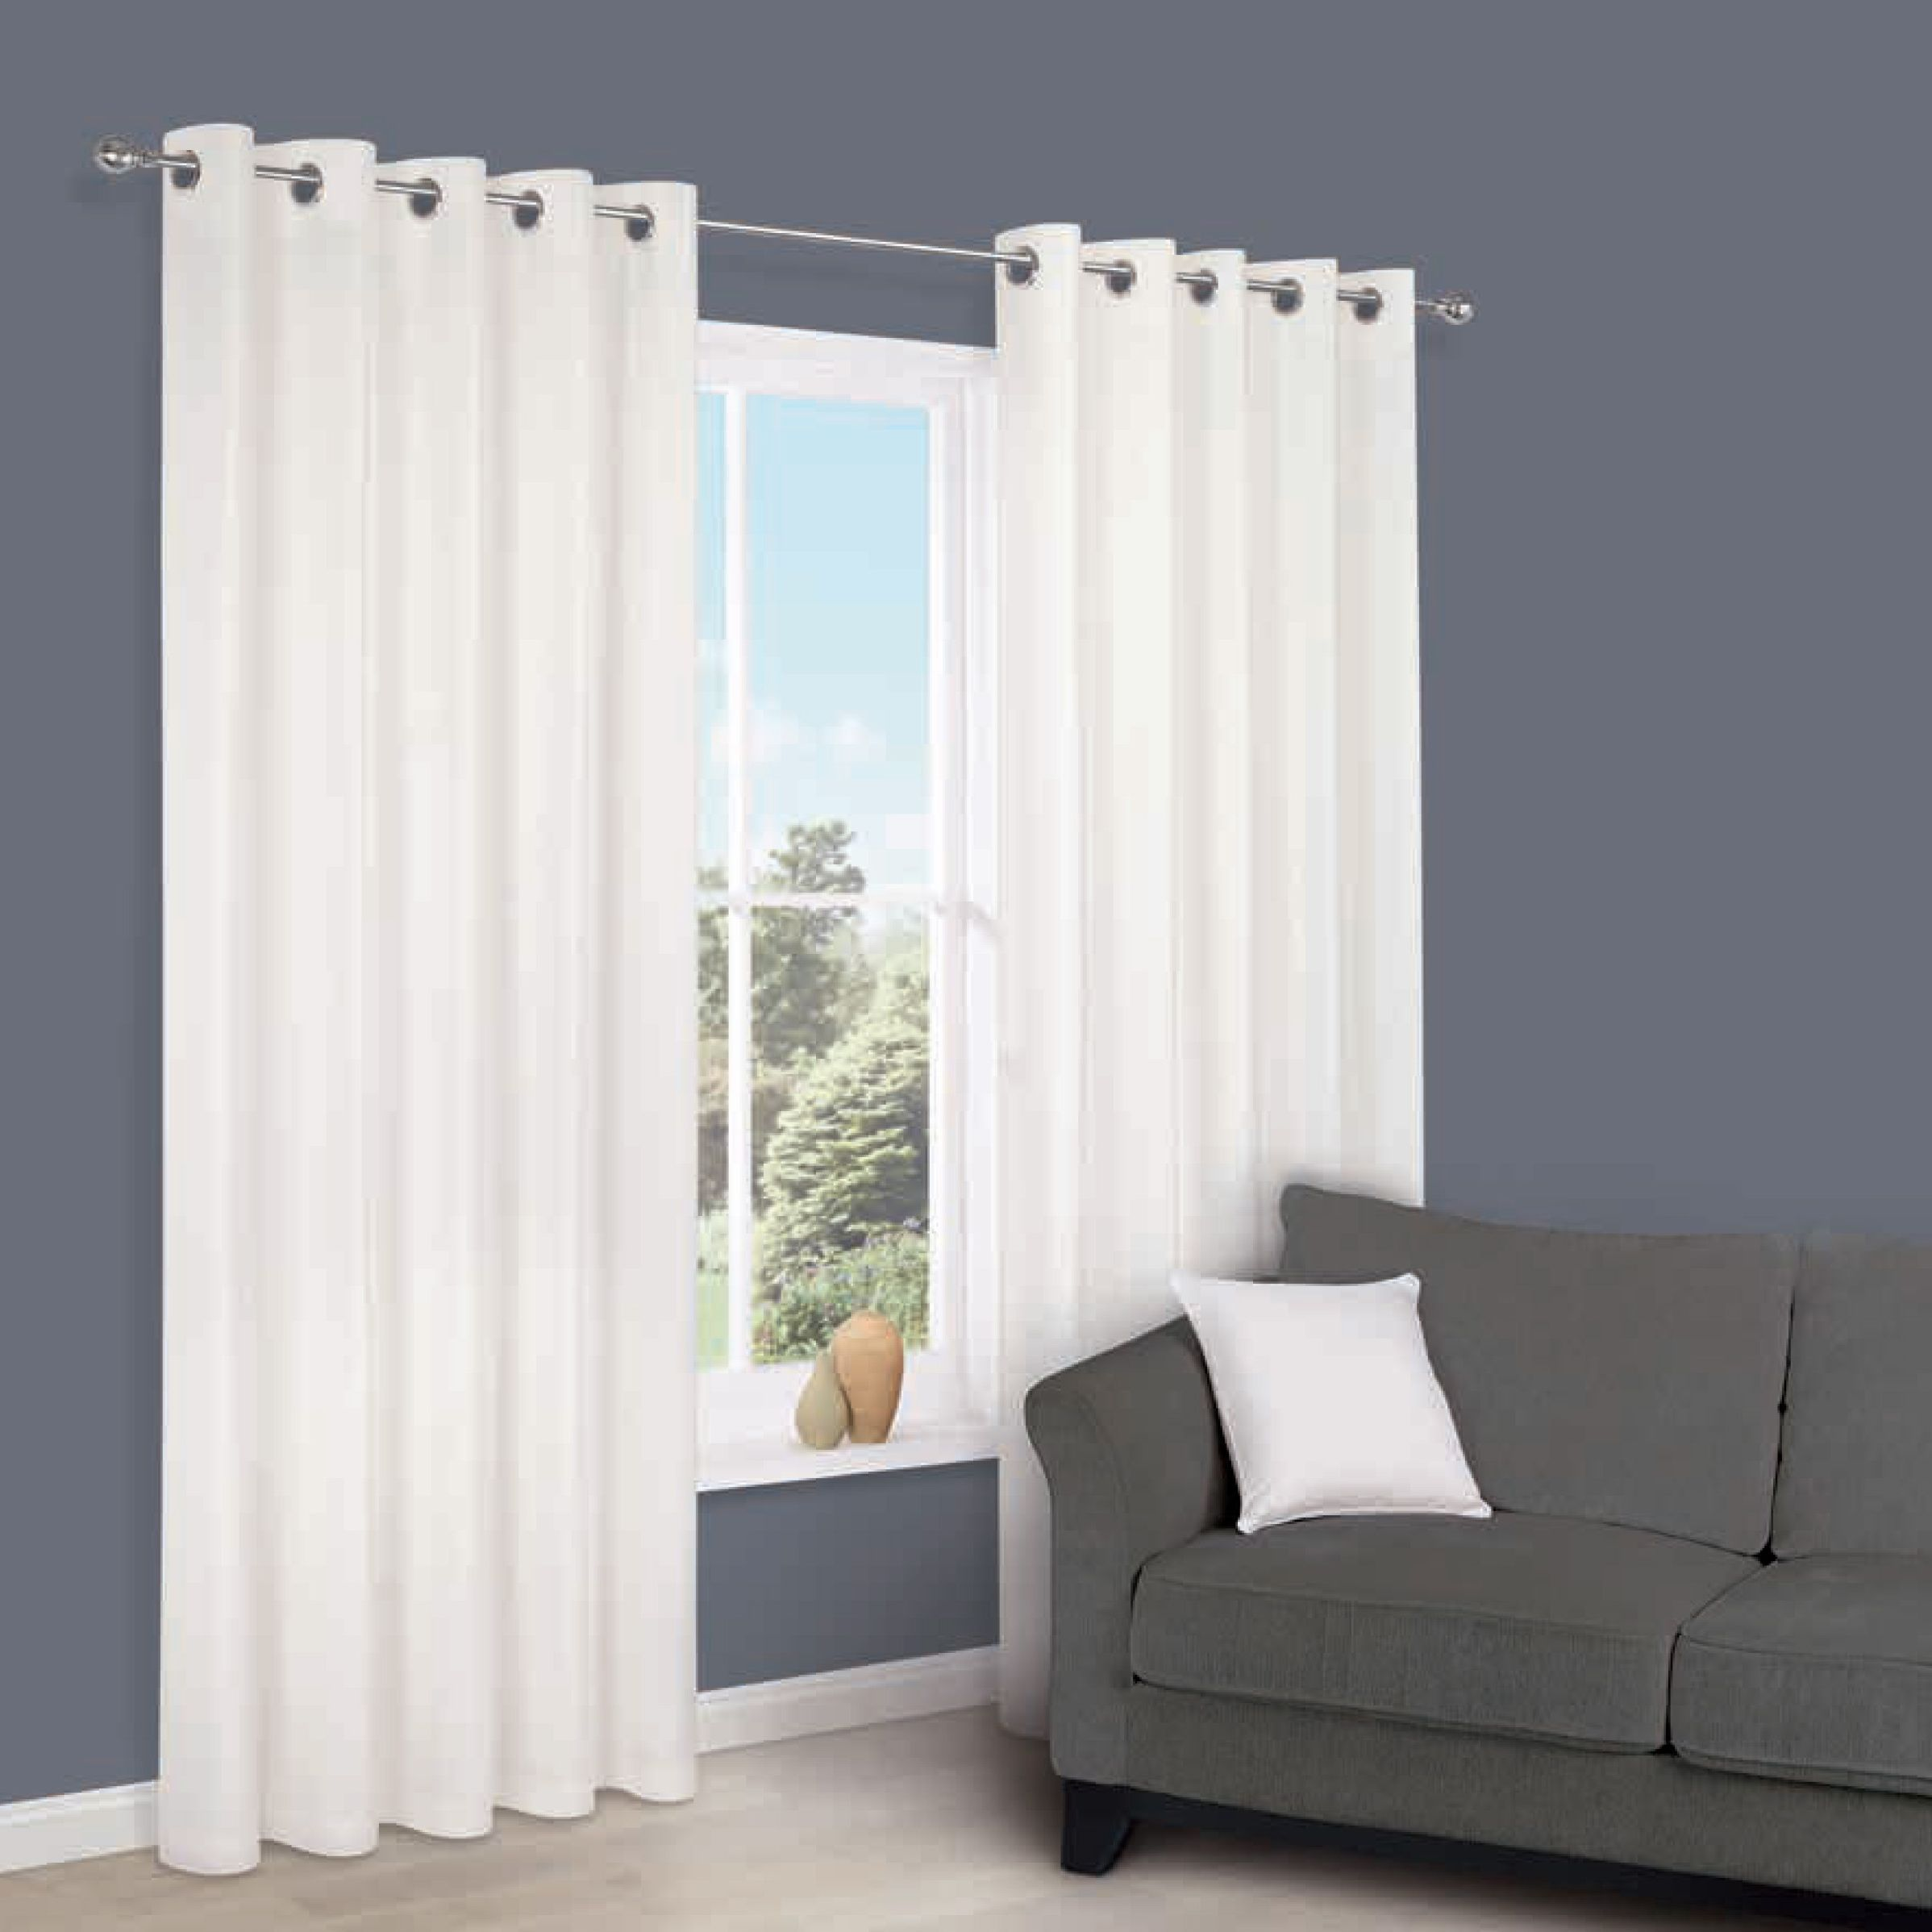 Zen White Plain Eyelet Curtains (w)117 Cm (l)137 Cm